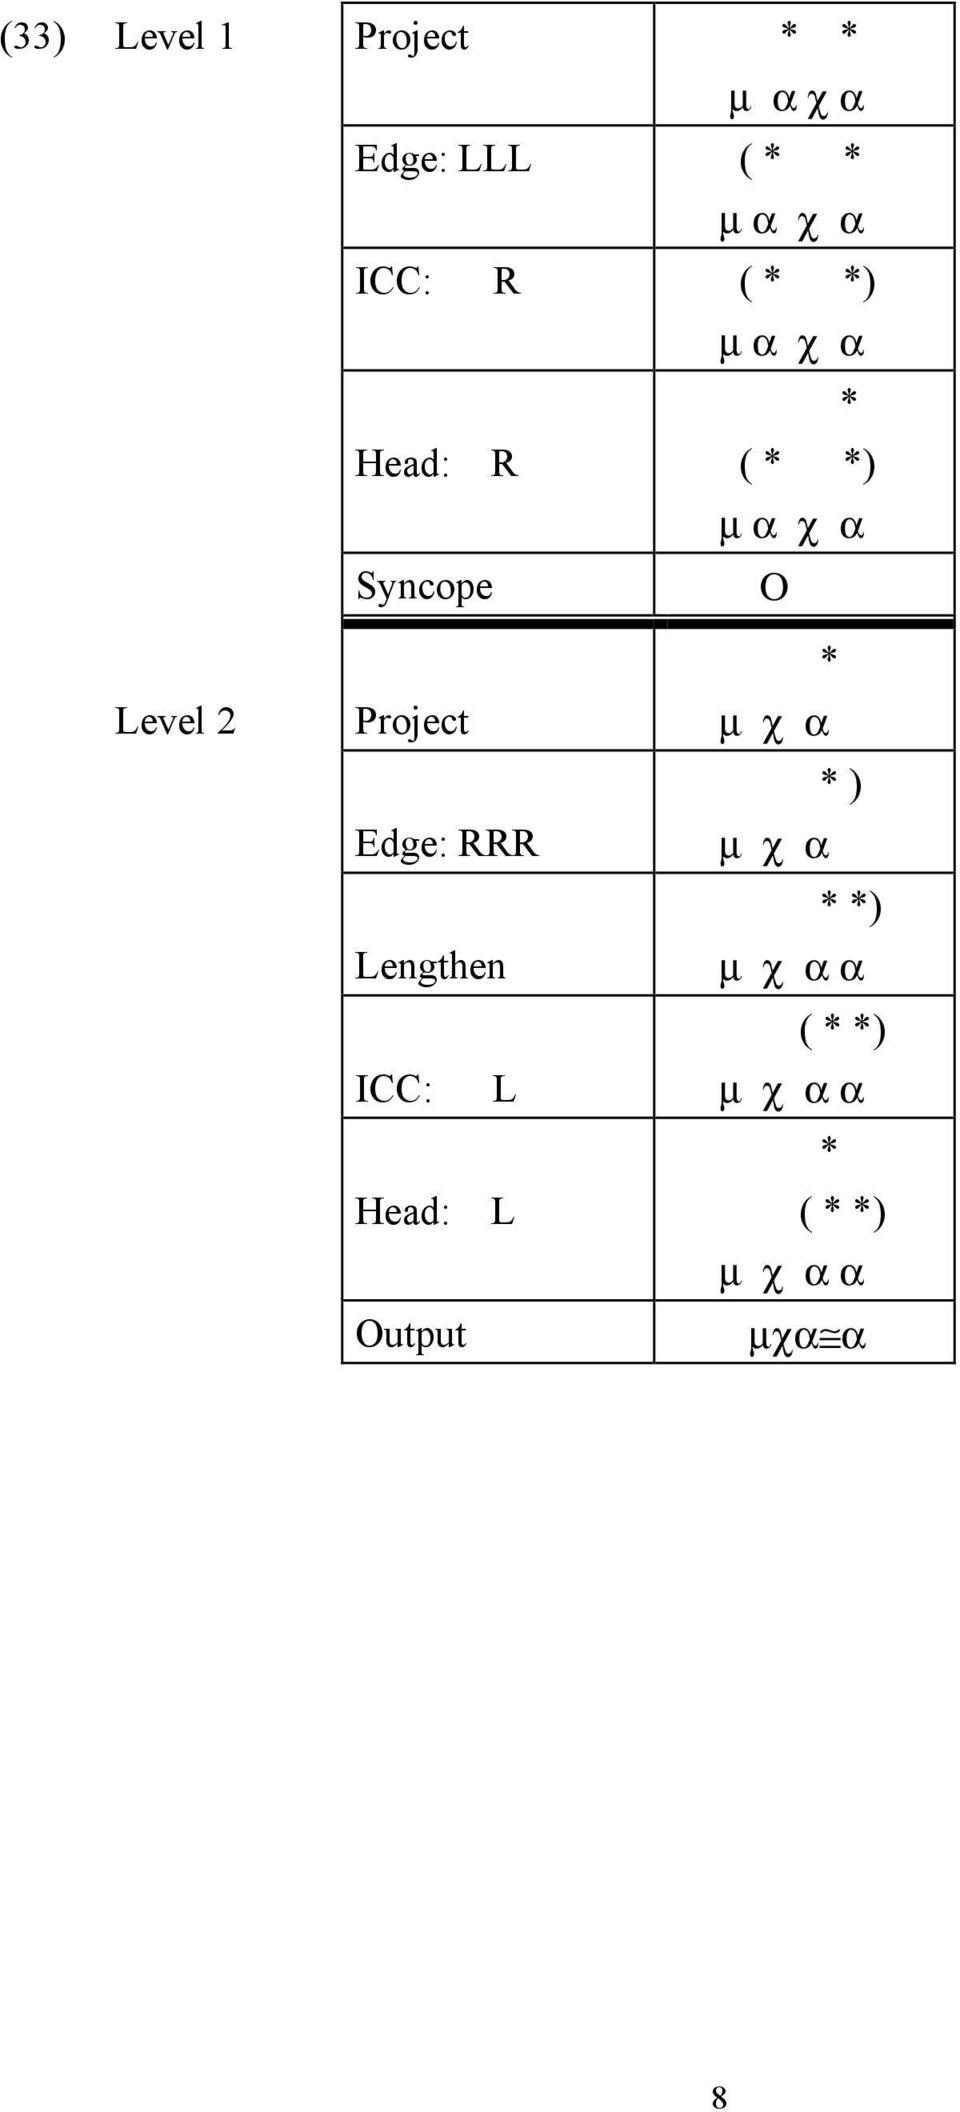 Level 2 Project Edge: RRR Lengthen ICC: L Head: L Output *